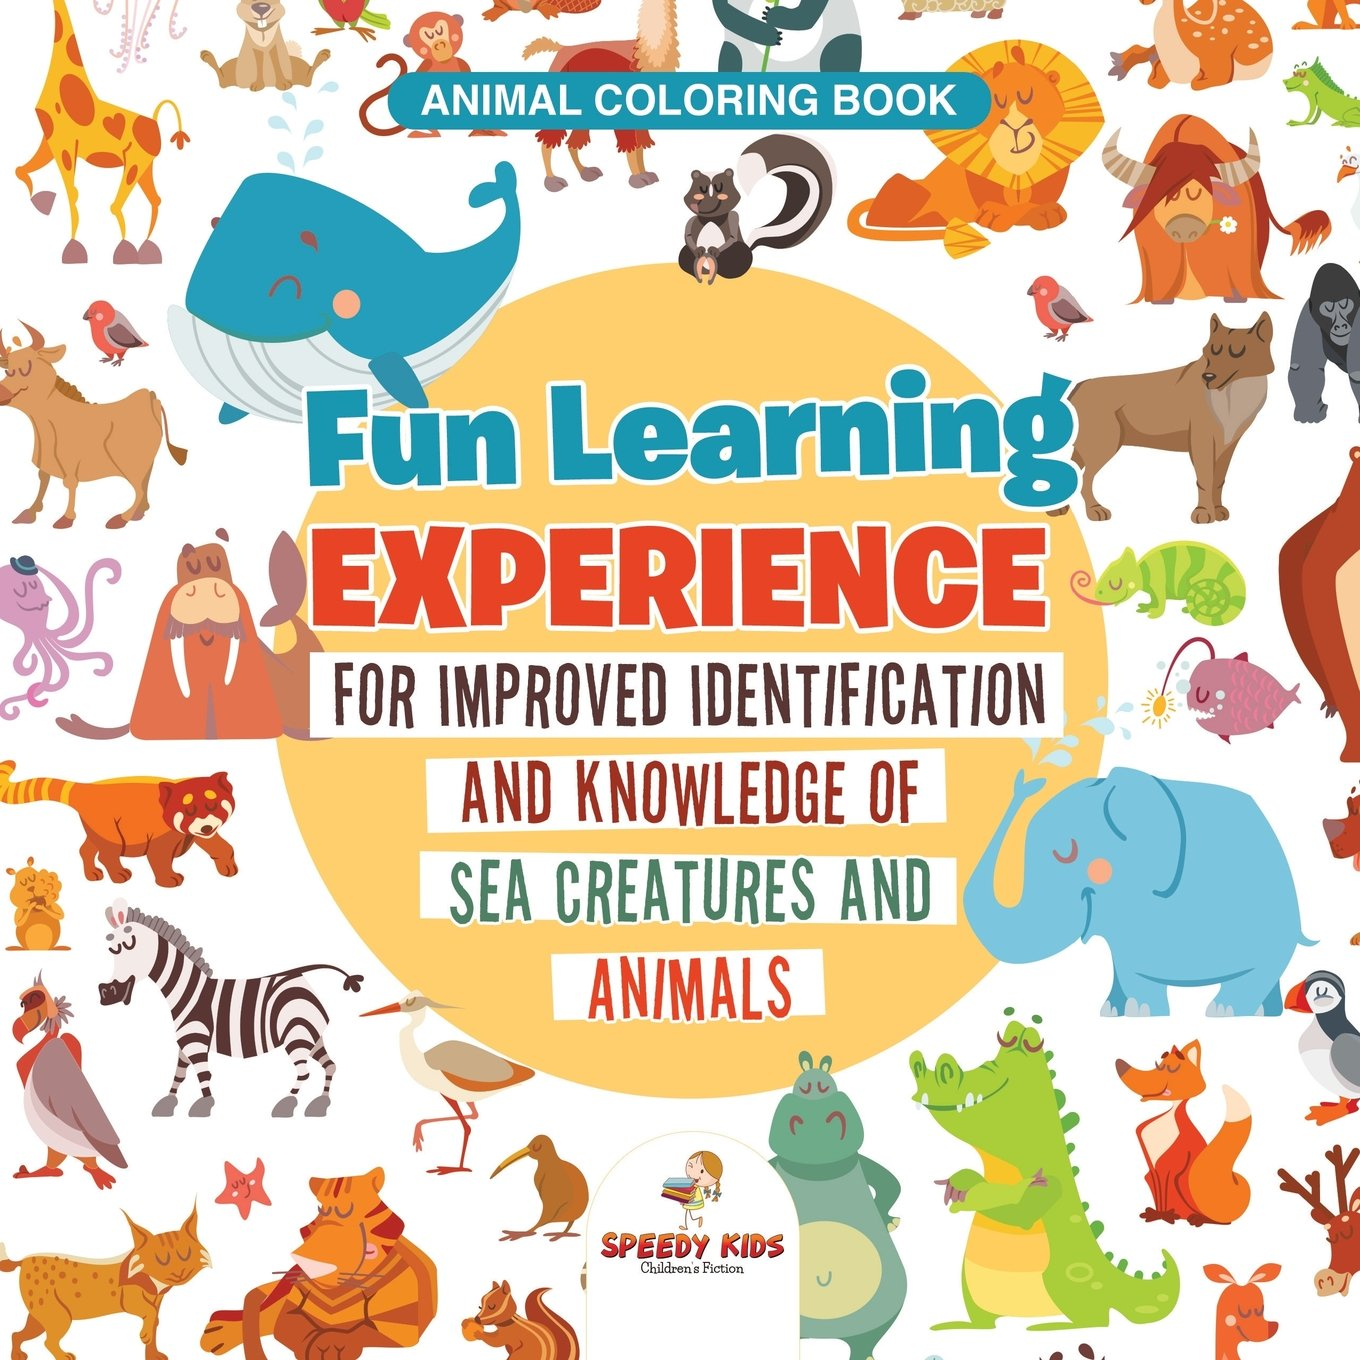 amazon animal coloring book fun learning experience for improved